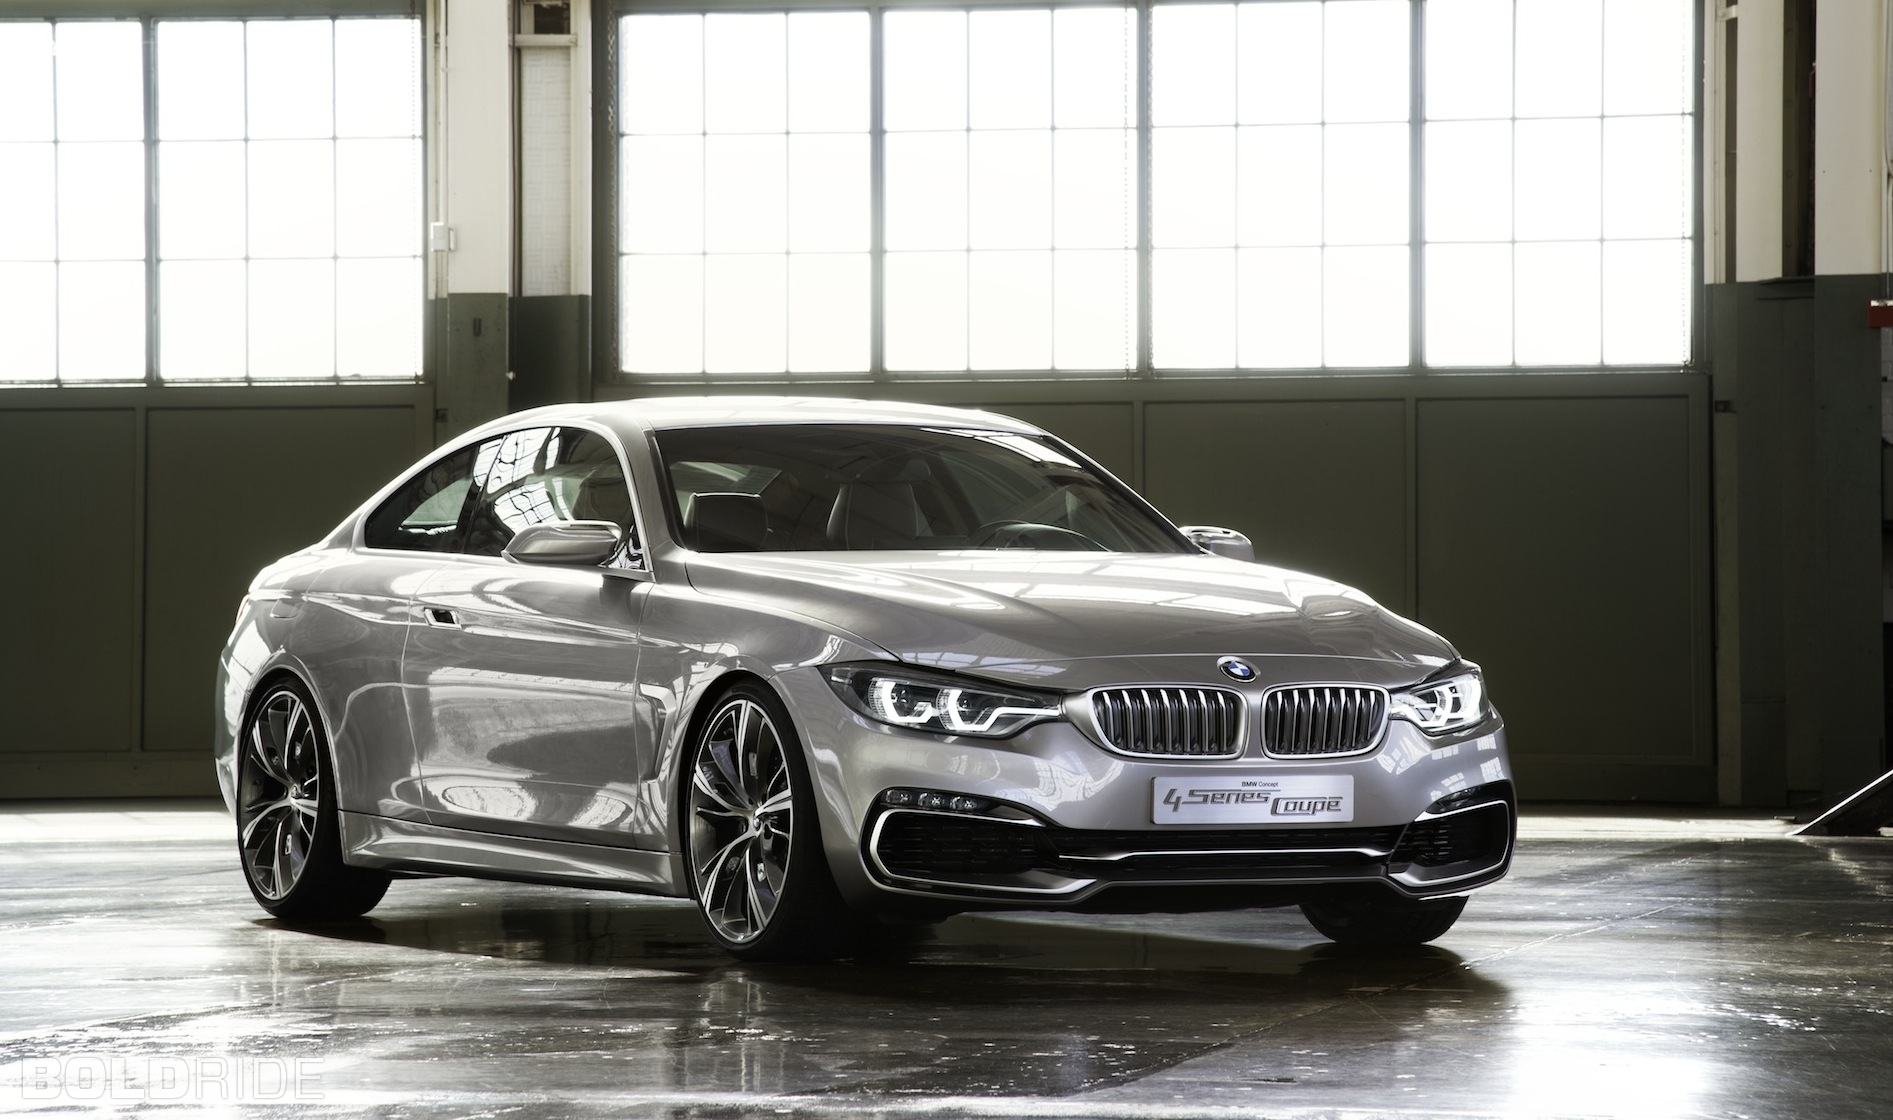 BMW 4 series 418d 2013 photo - 5